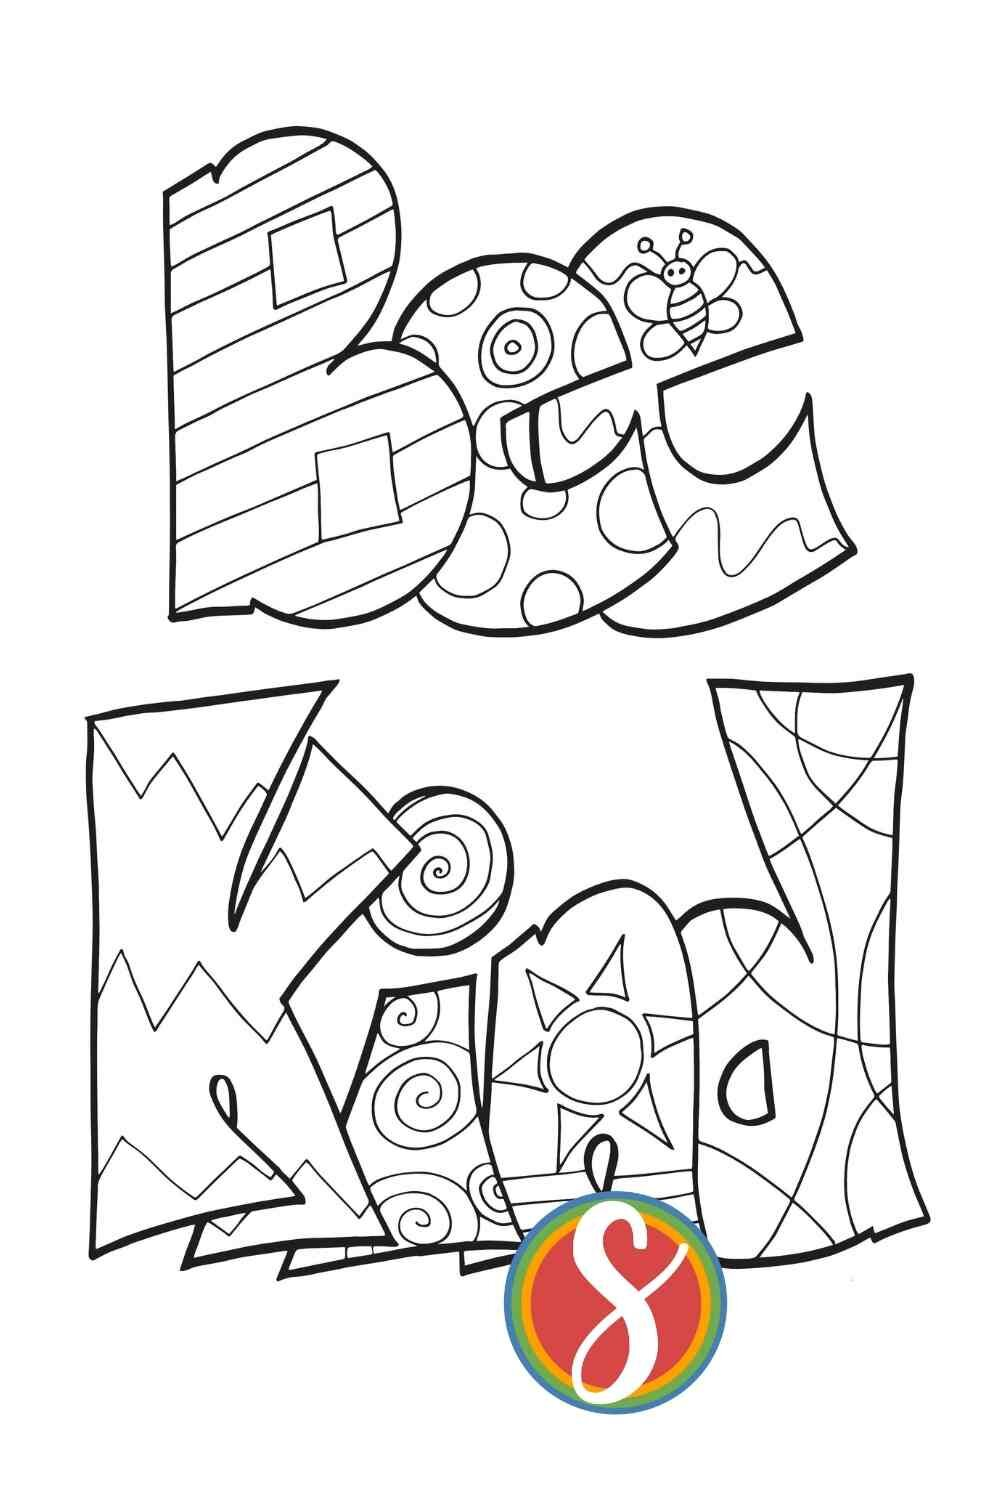 Bee Kind bee coloring page from Stevie Doodles - free coloring pages with bees from Stevie Doodles